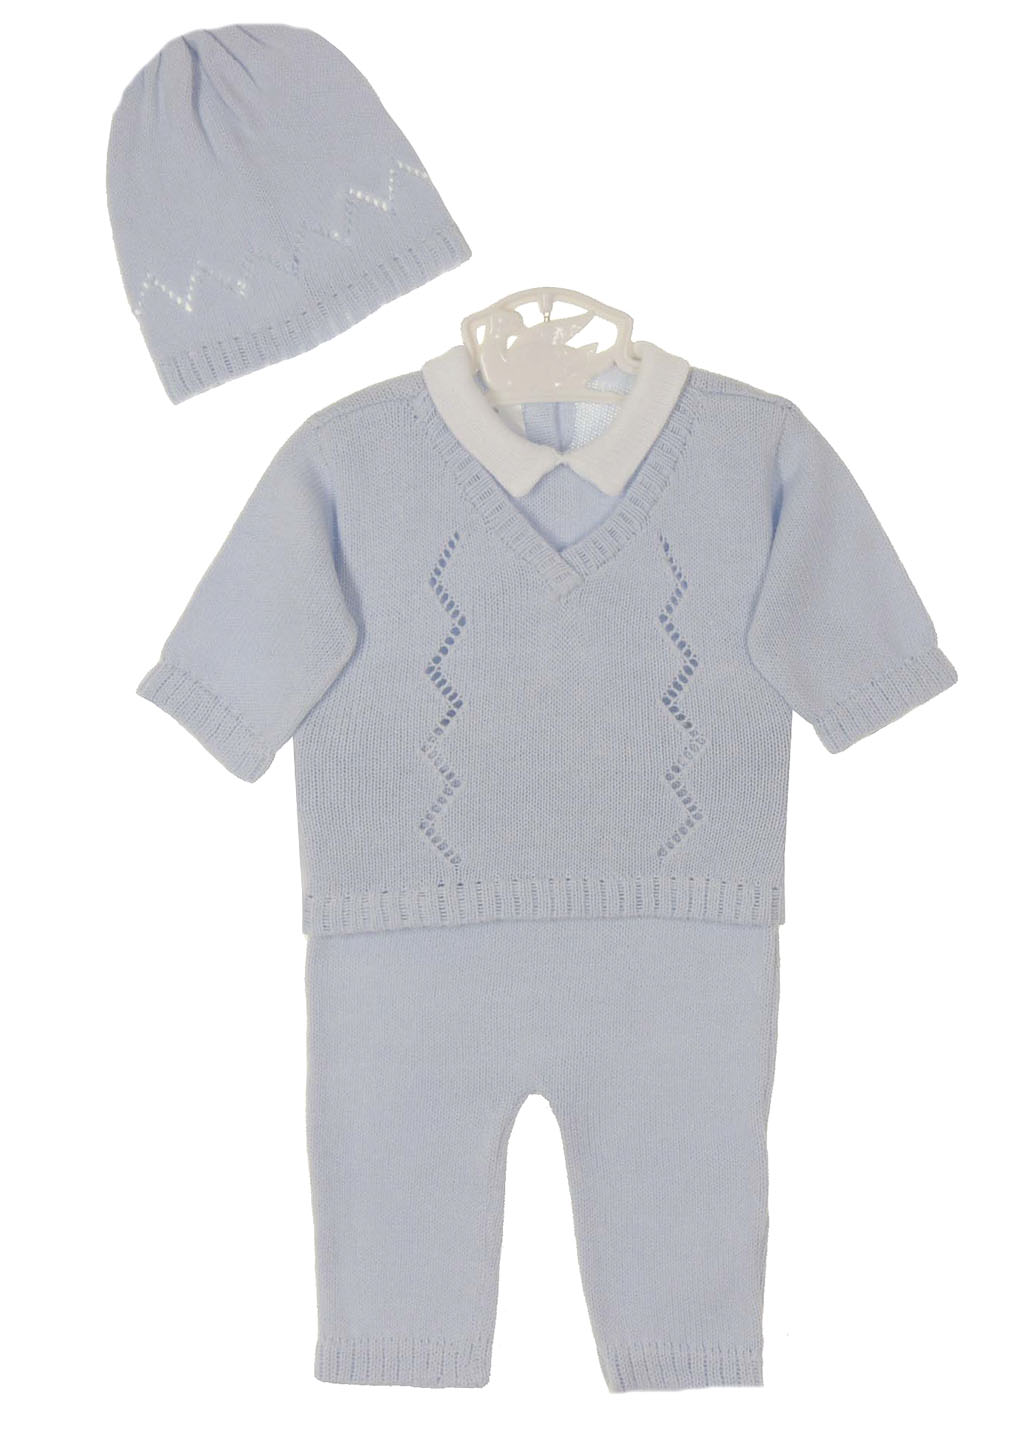 6f43c003b Baby s Trousseau pale blue cotton knit sweater and pants set with ...